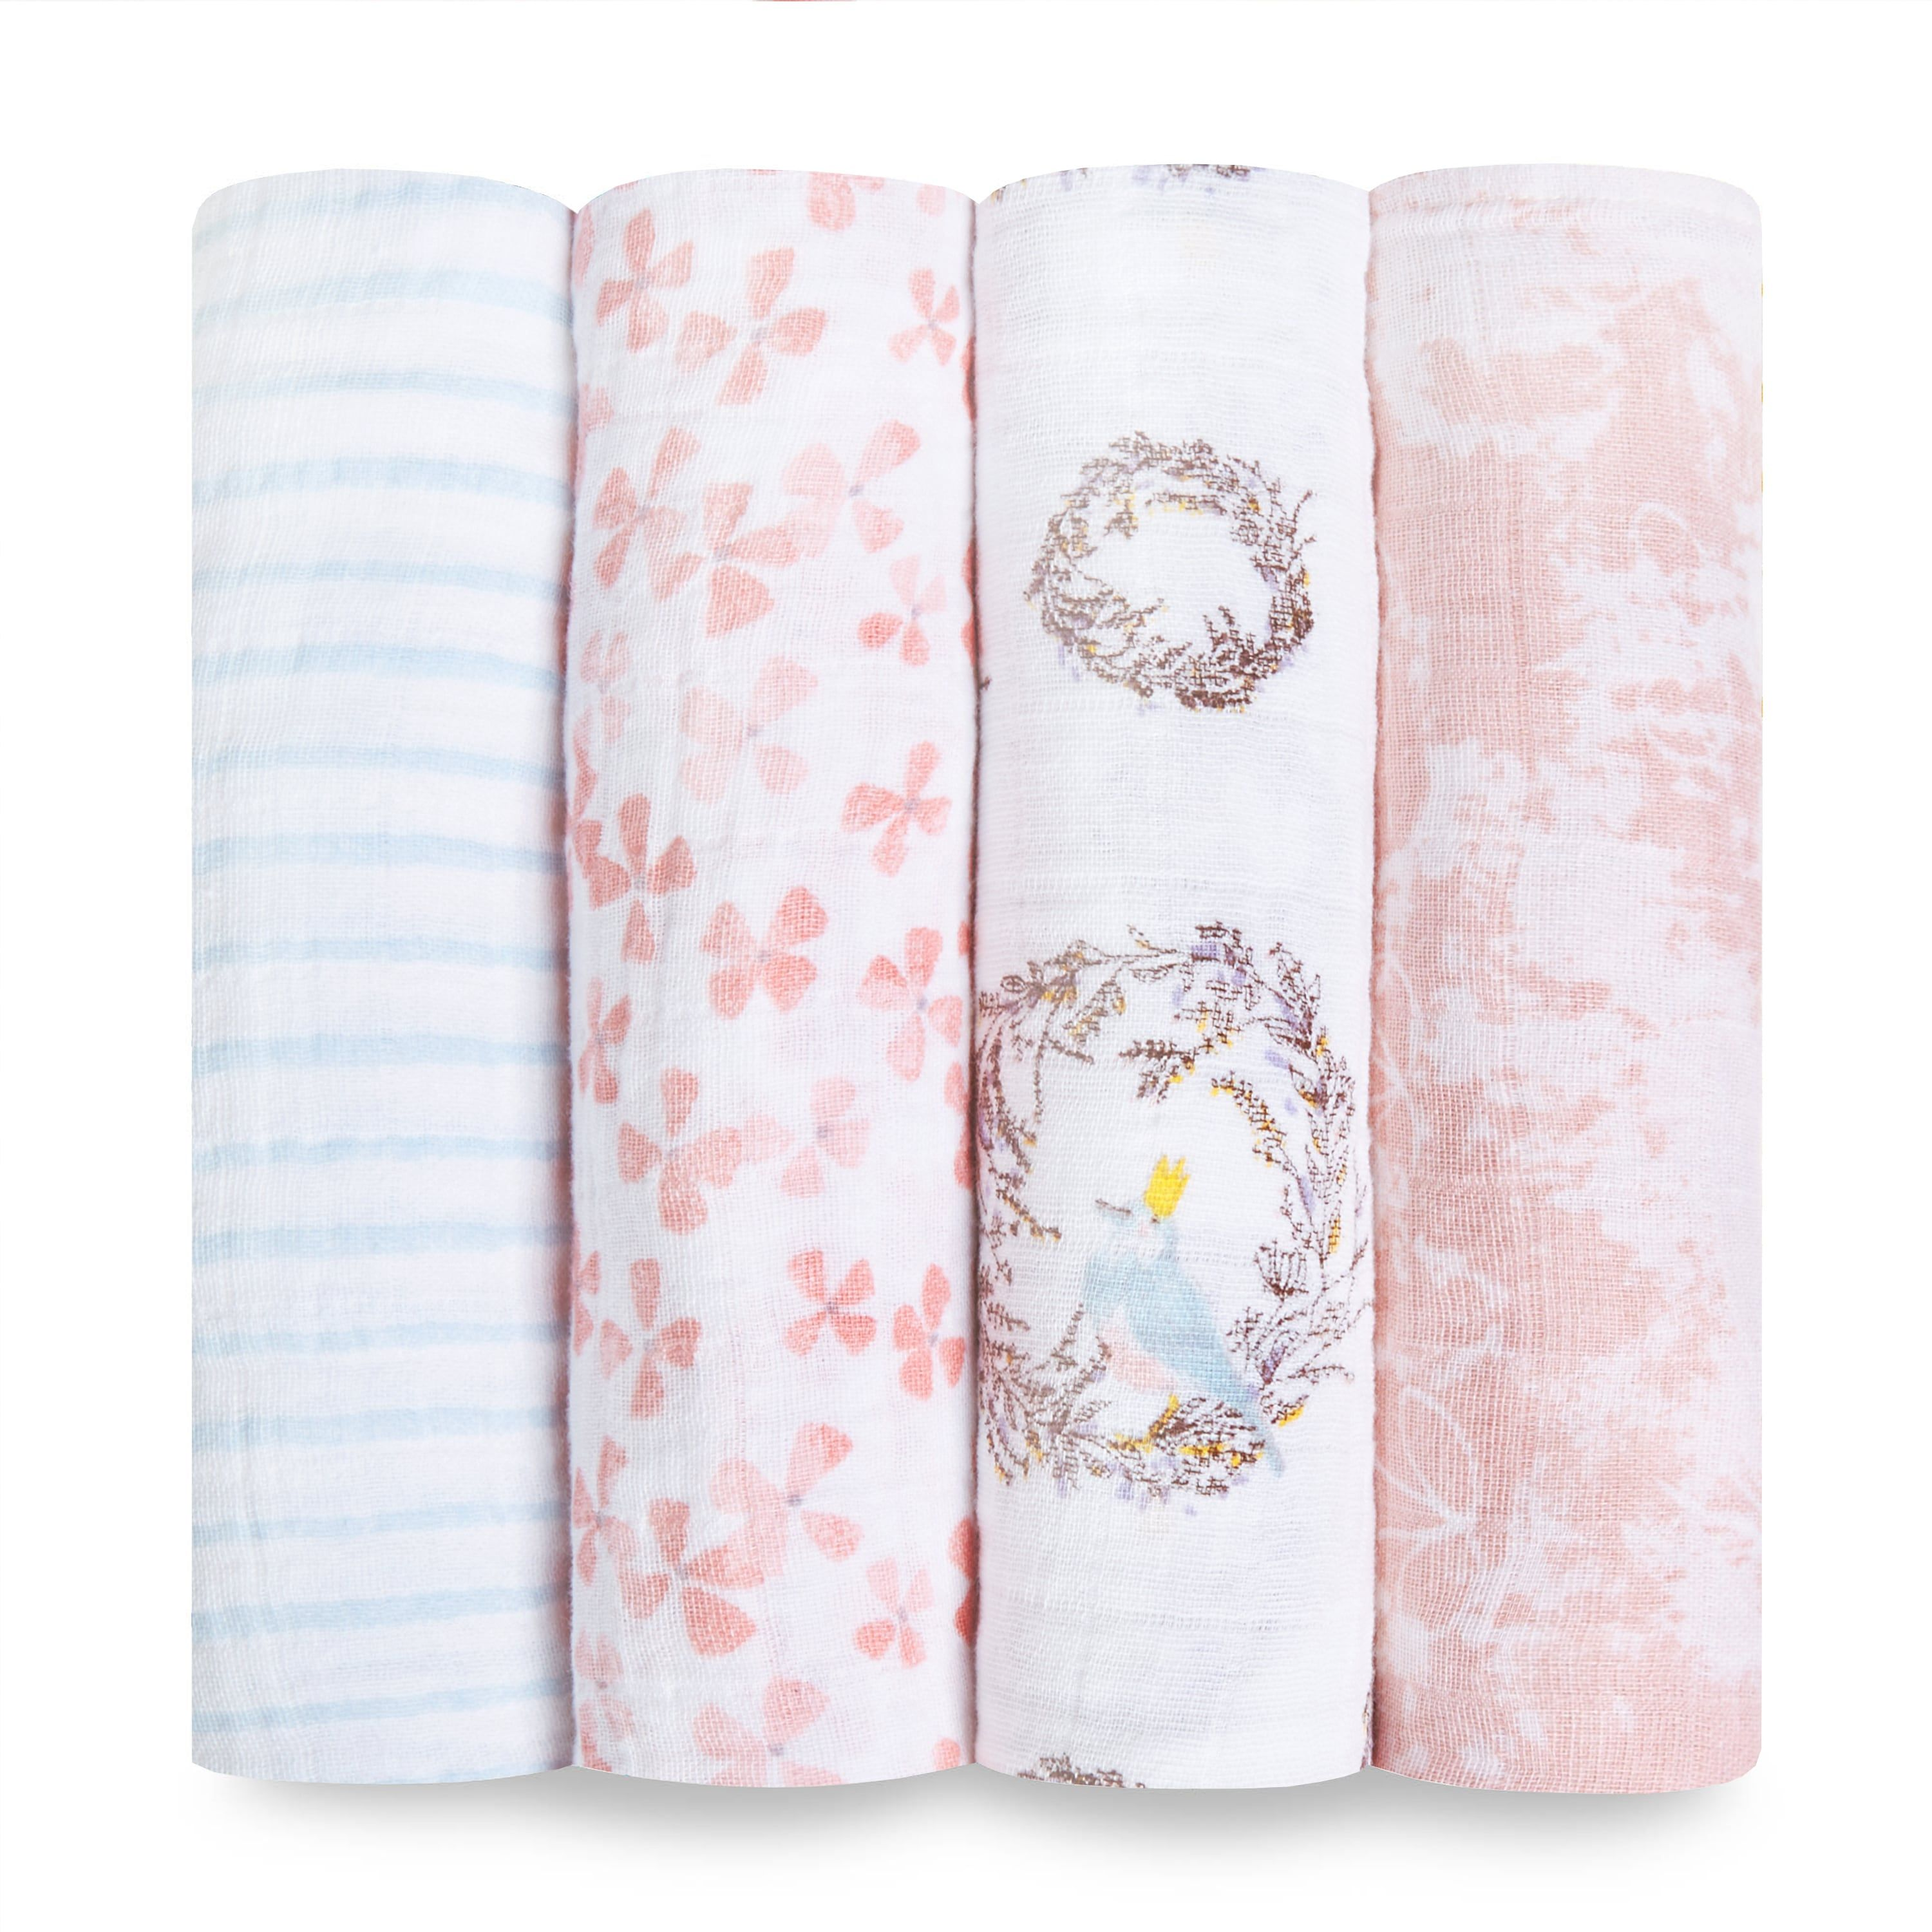 Classic Swaddle 4 Pack Aden And Anais Muslin Baby Blankets